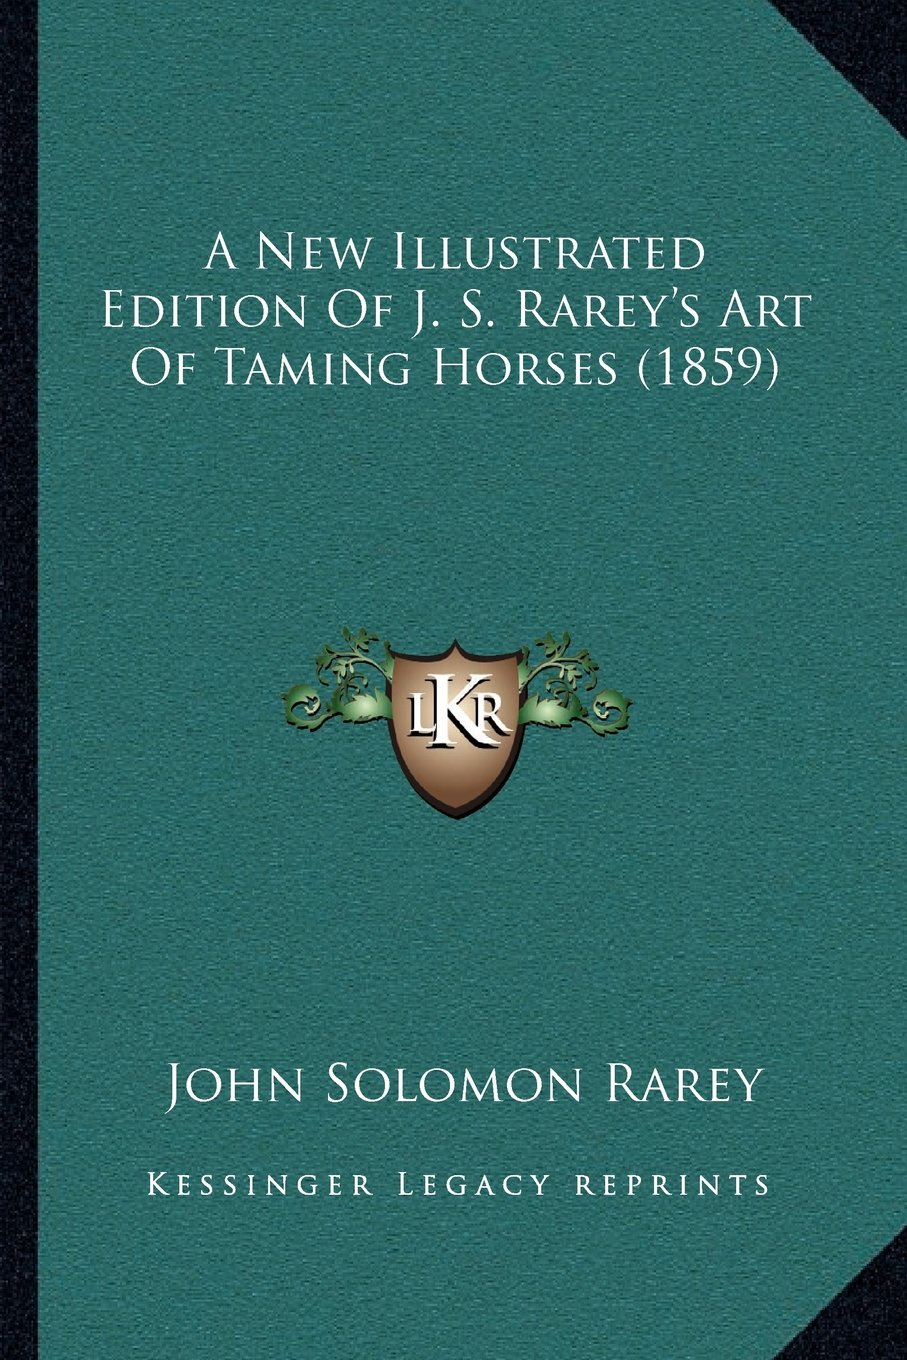 Download A New Illustrated Edition Of J. S. Rarey's Art Of Taming Horses (1859) pdf